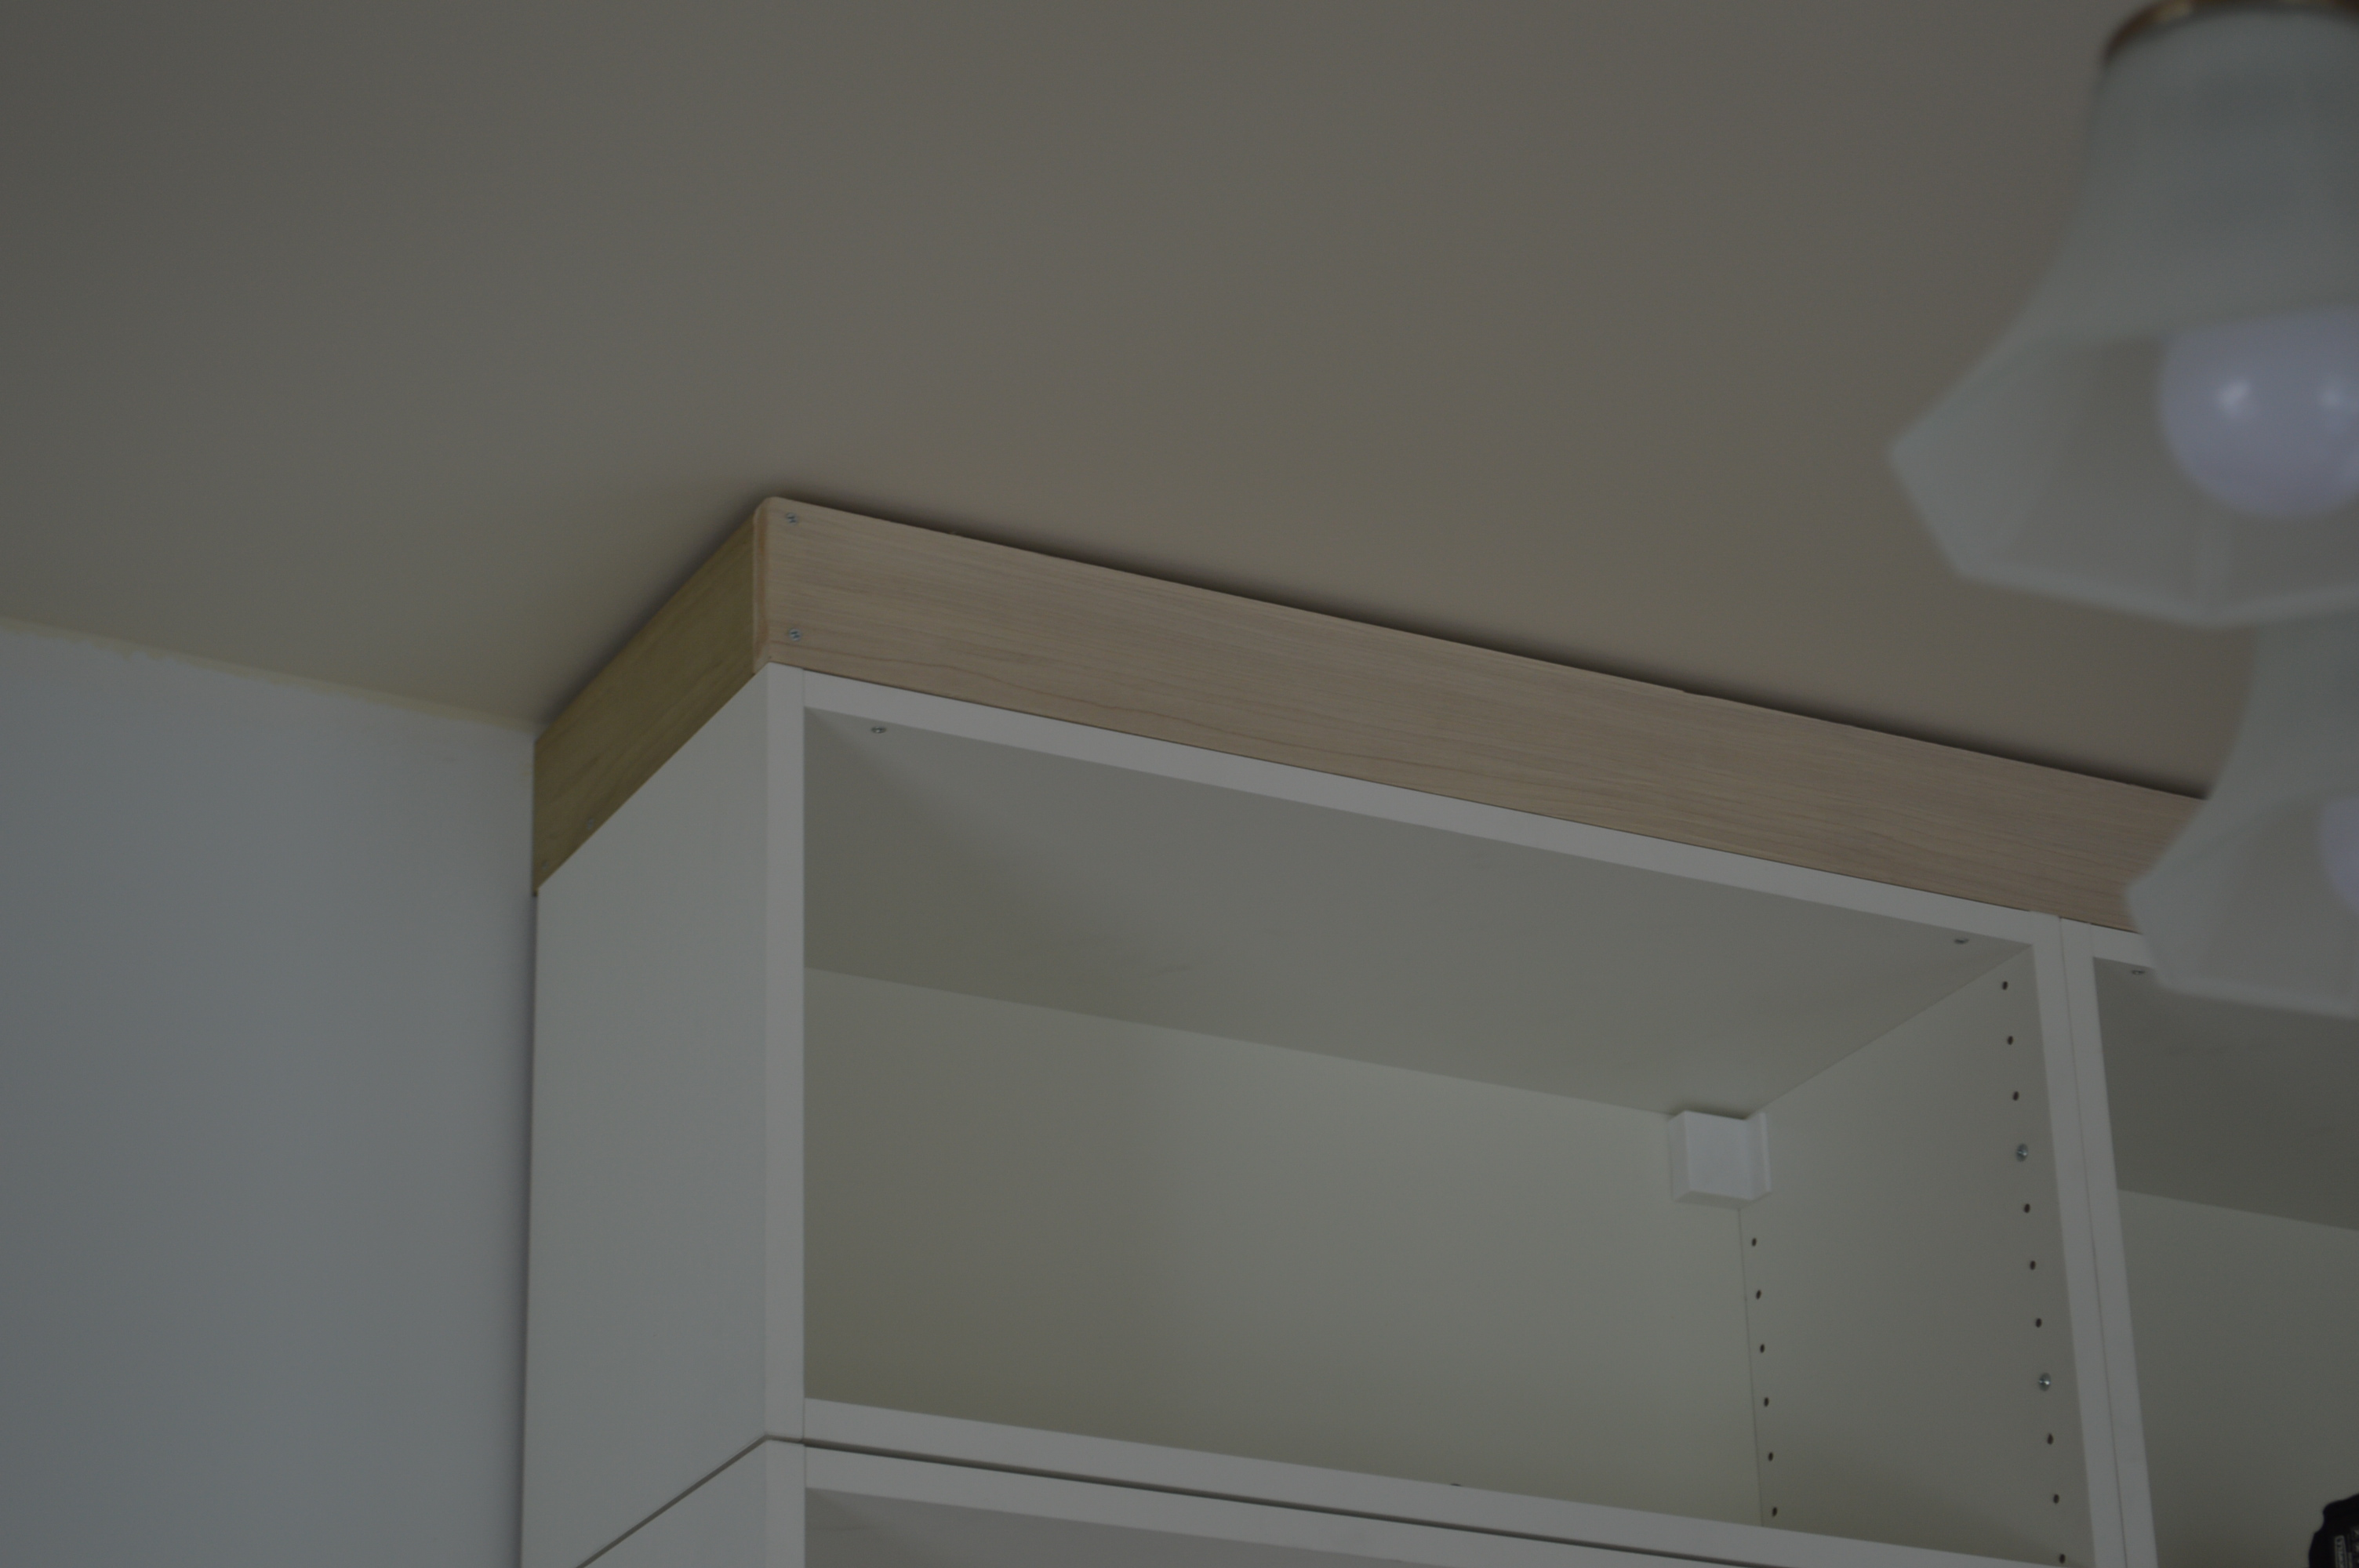 How To Scribe Ikea Cabinets